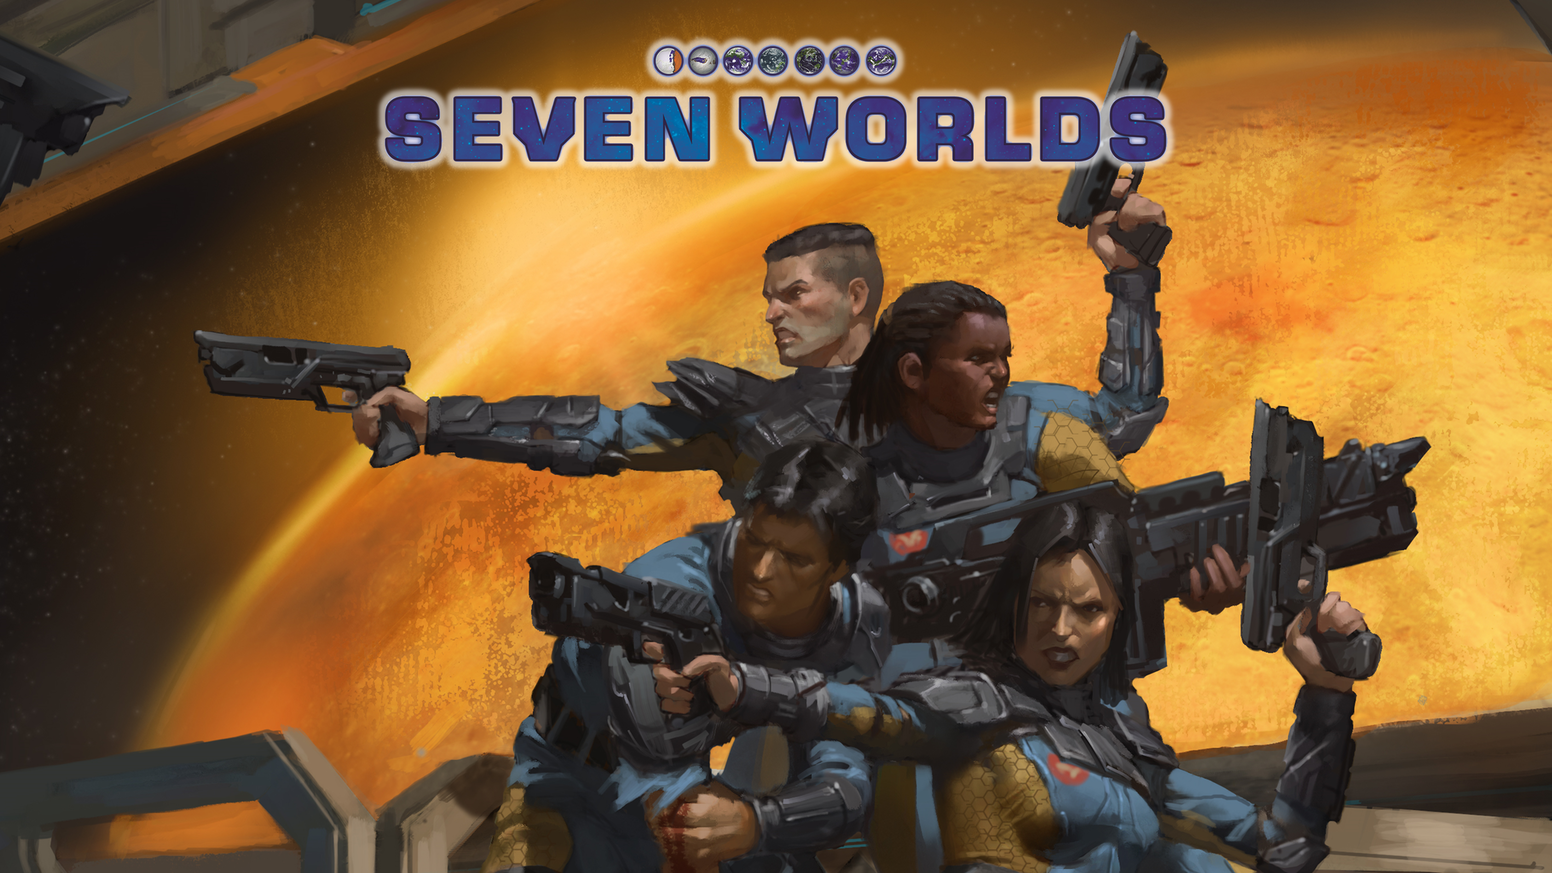 Seven worlds realistic science fiction for savage worlds for Bureau 13 savage worlds